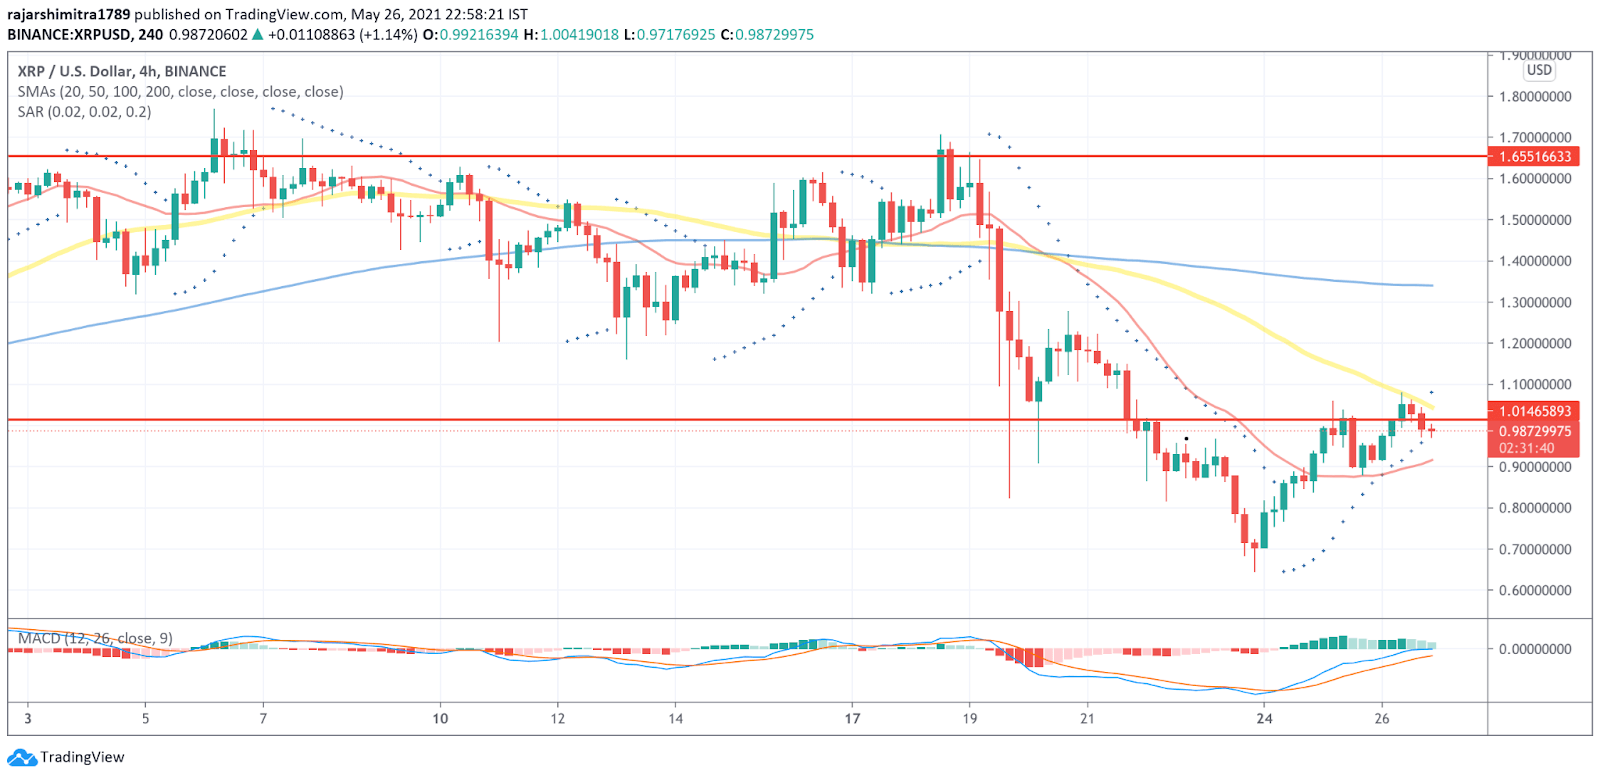 XRP/USD 4-hour chart 052721